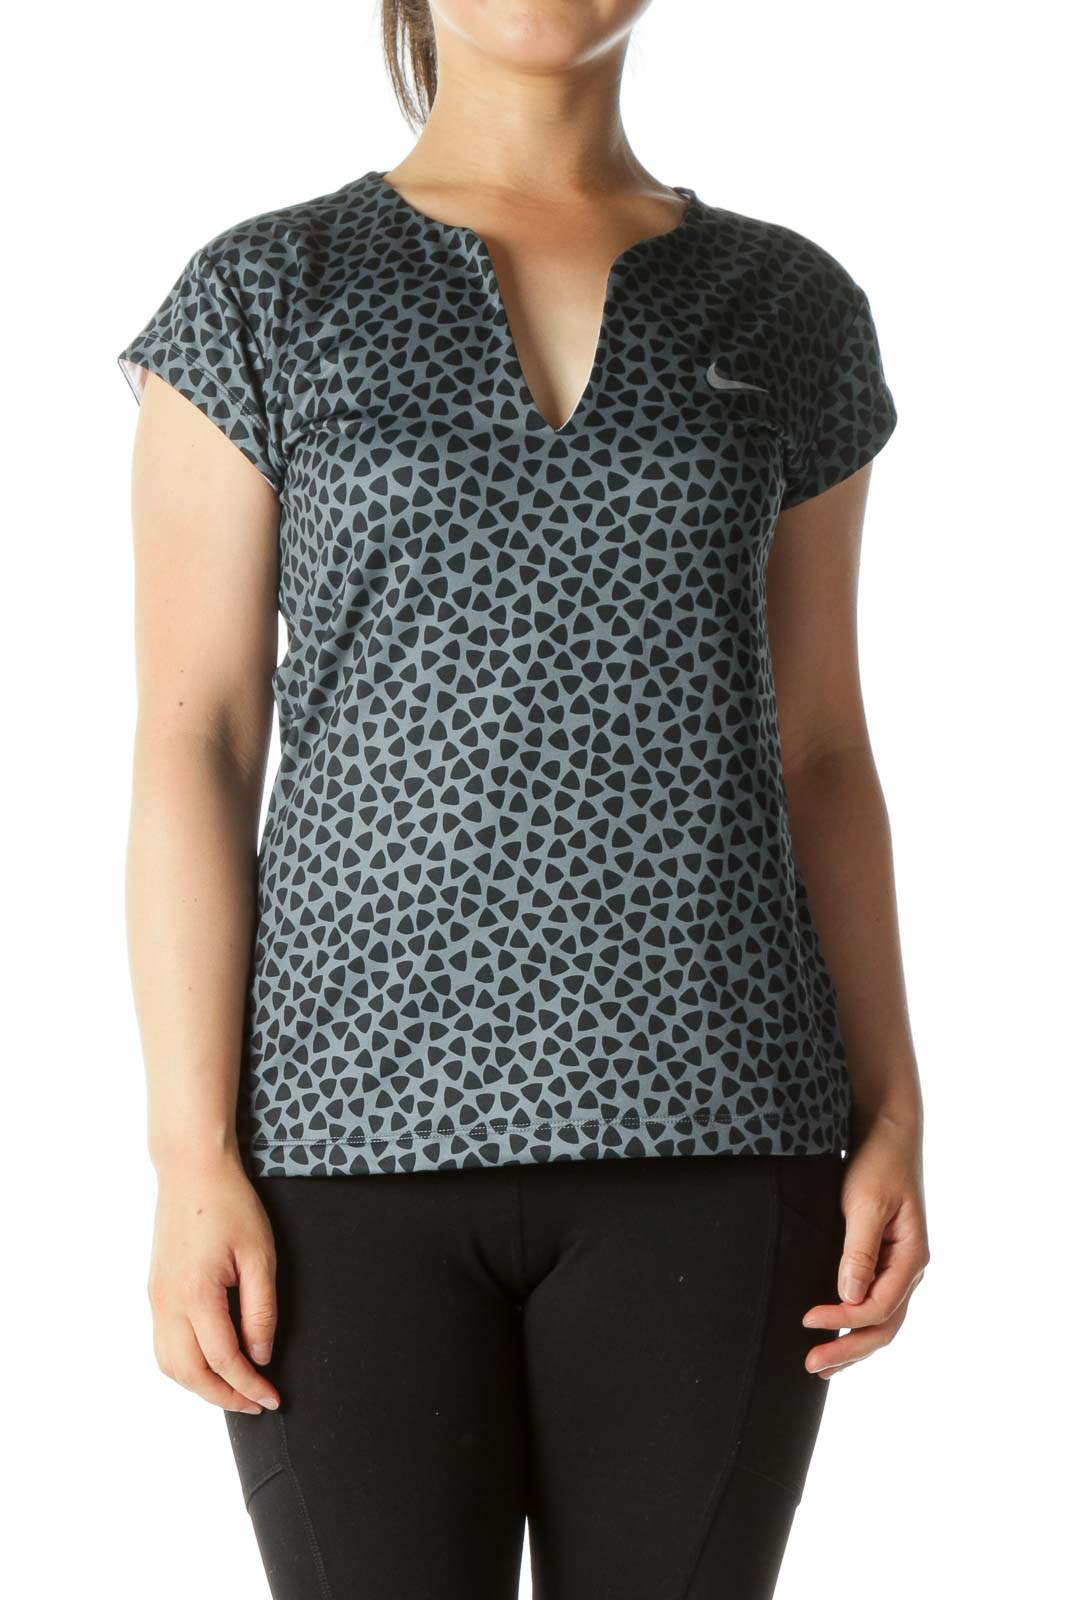 Gray and Black Triangle Print Sports Top